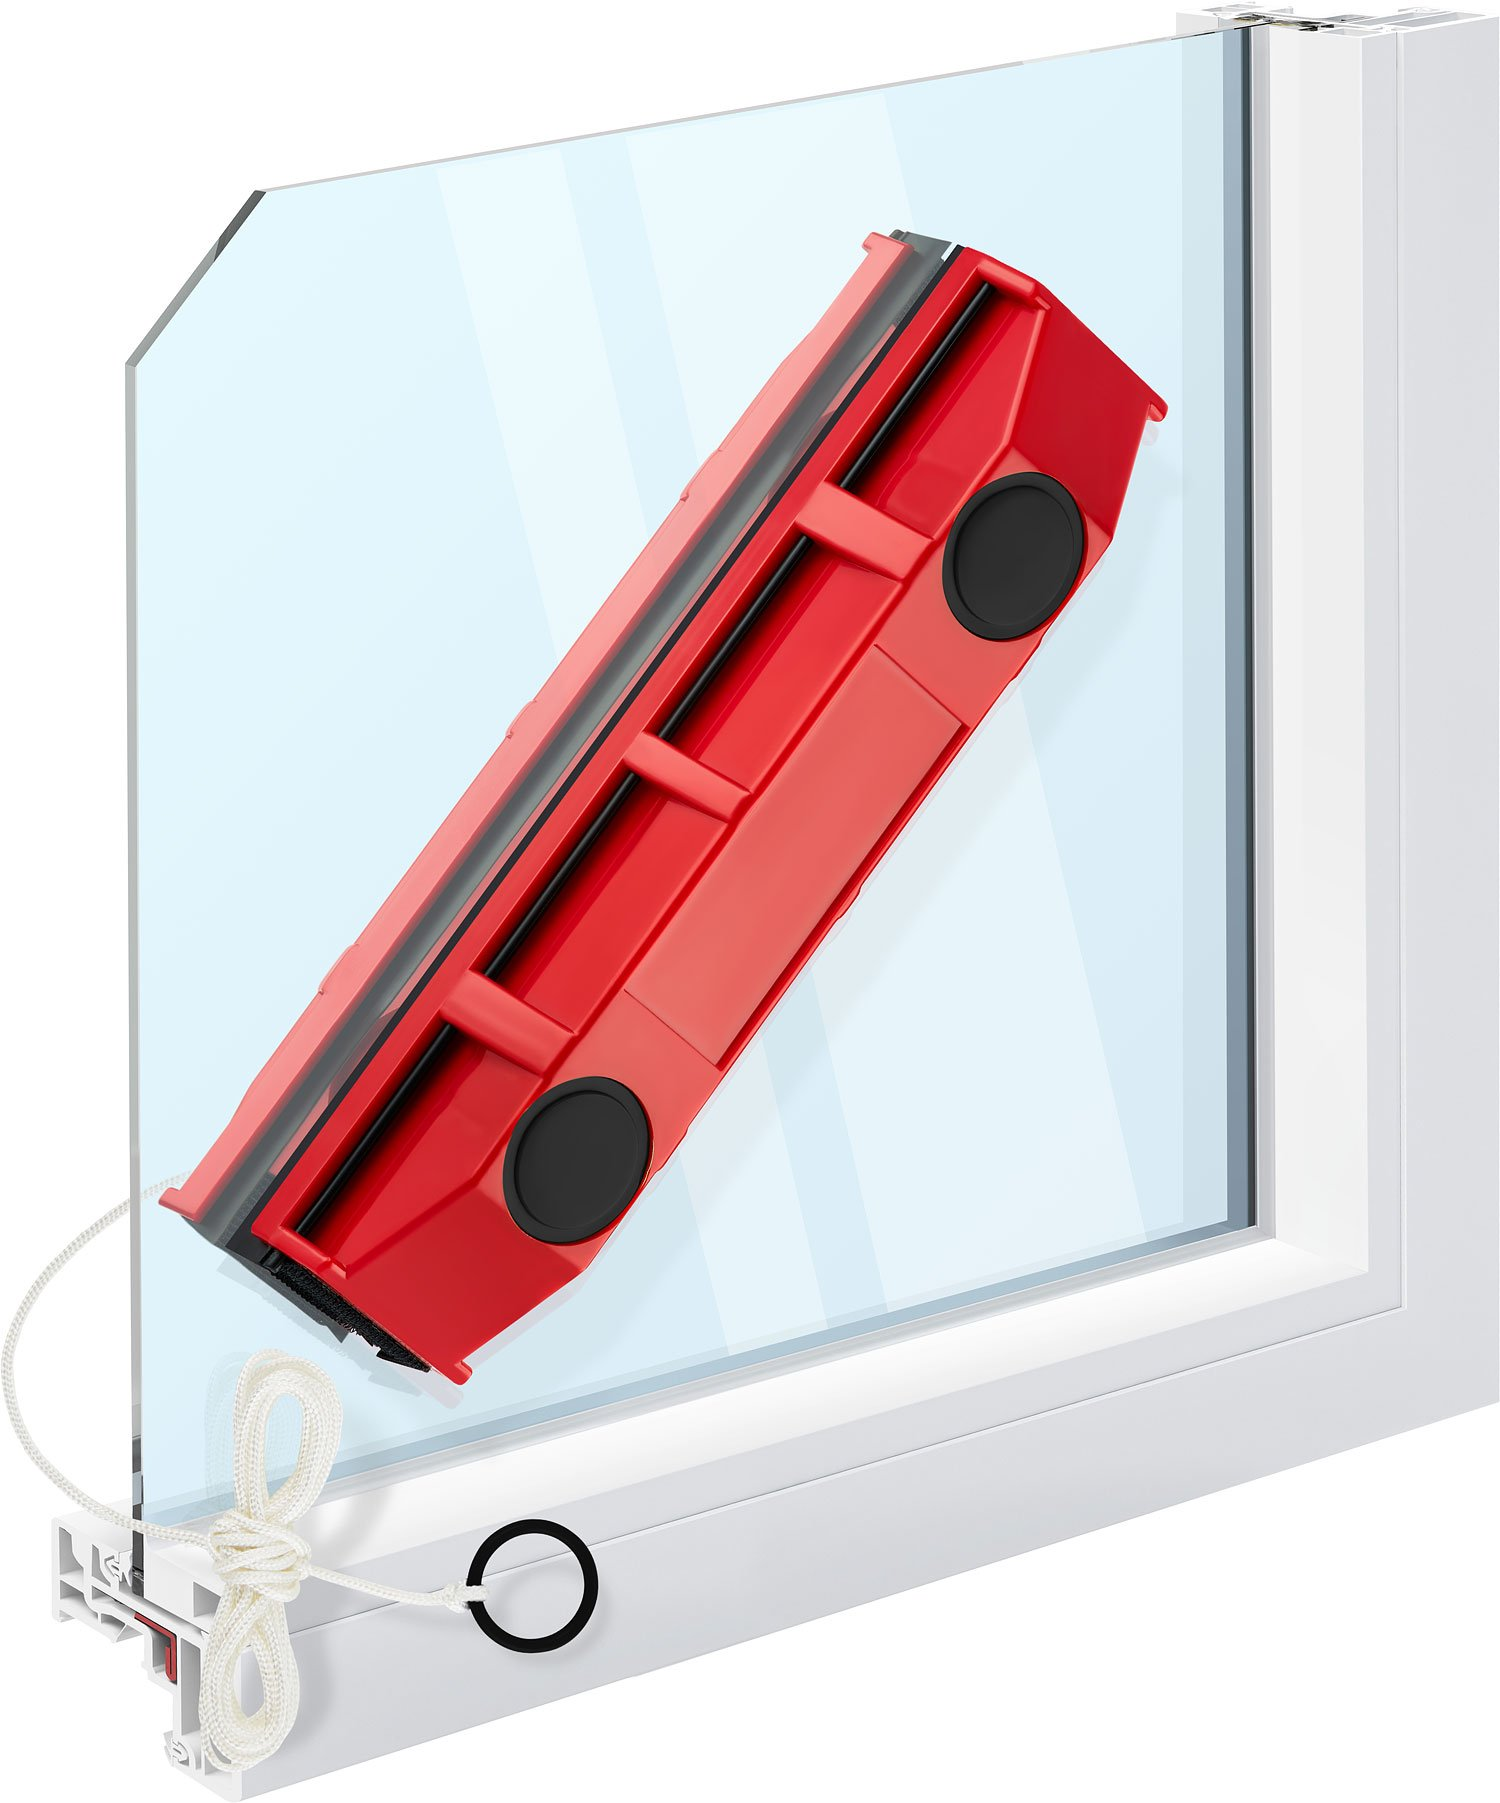 Tyroler Bright Tools The Glider S-1 Magnetic Window Cleaner for Single Glazed Windows